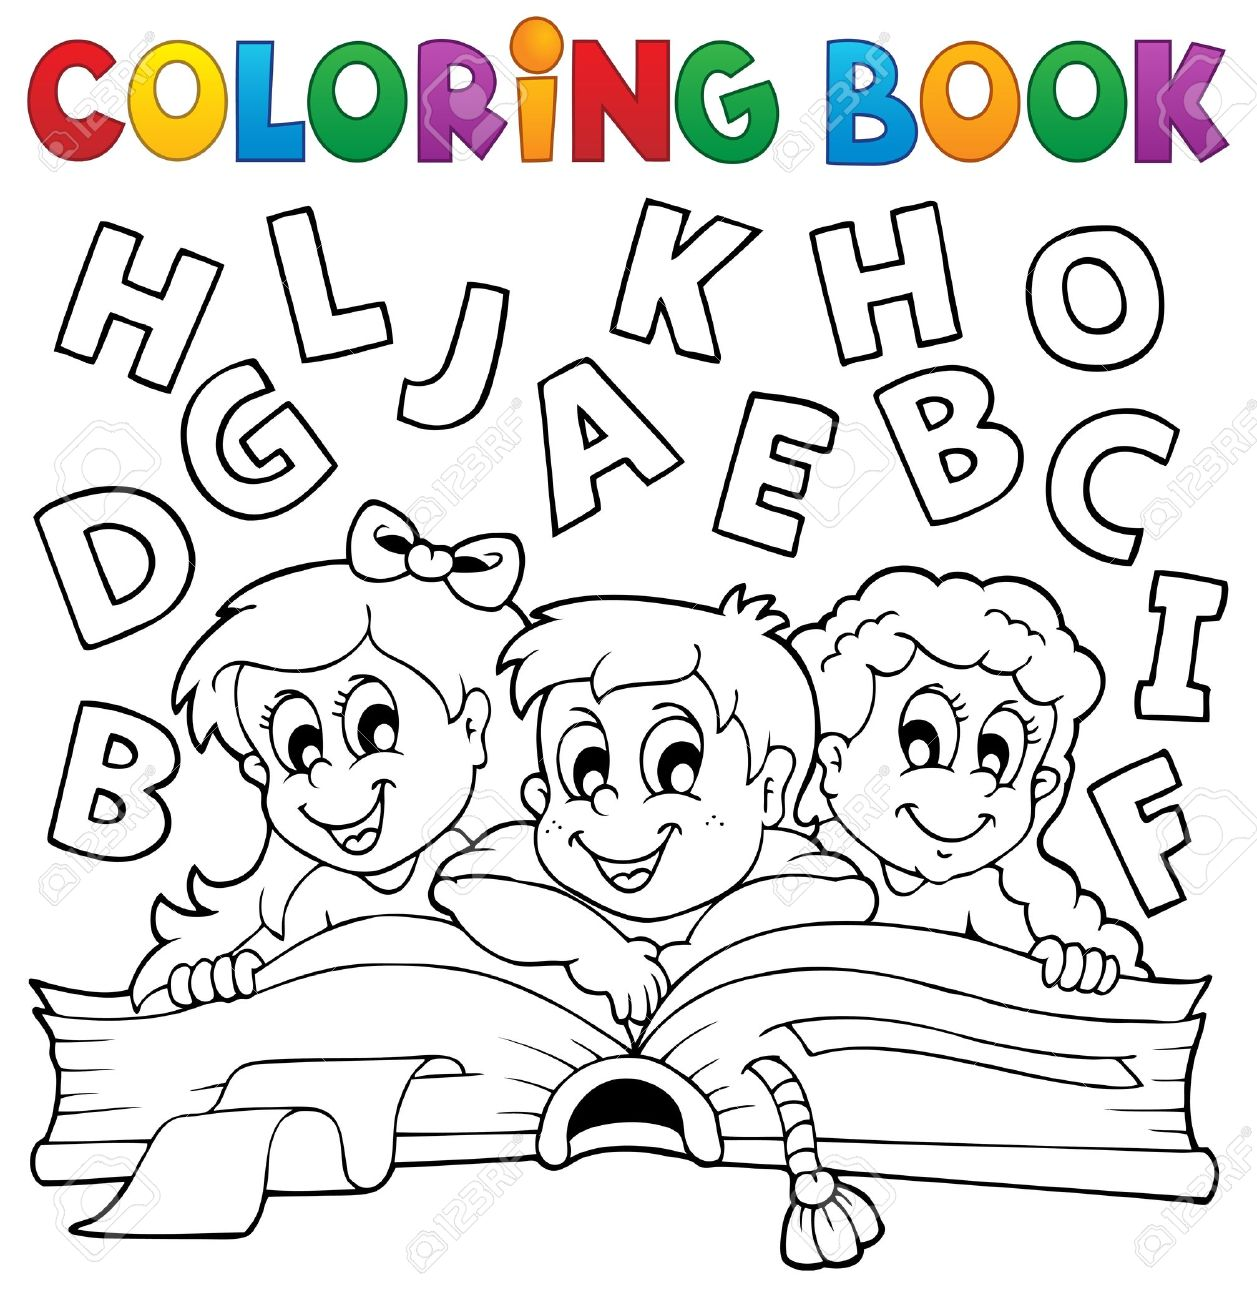 Coloring Book Kids Theme Eps Vector Illustration Stock Vector